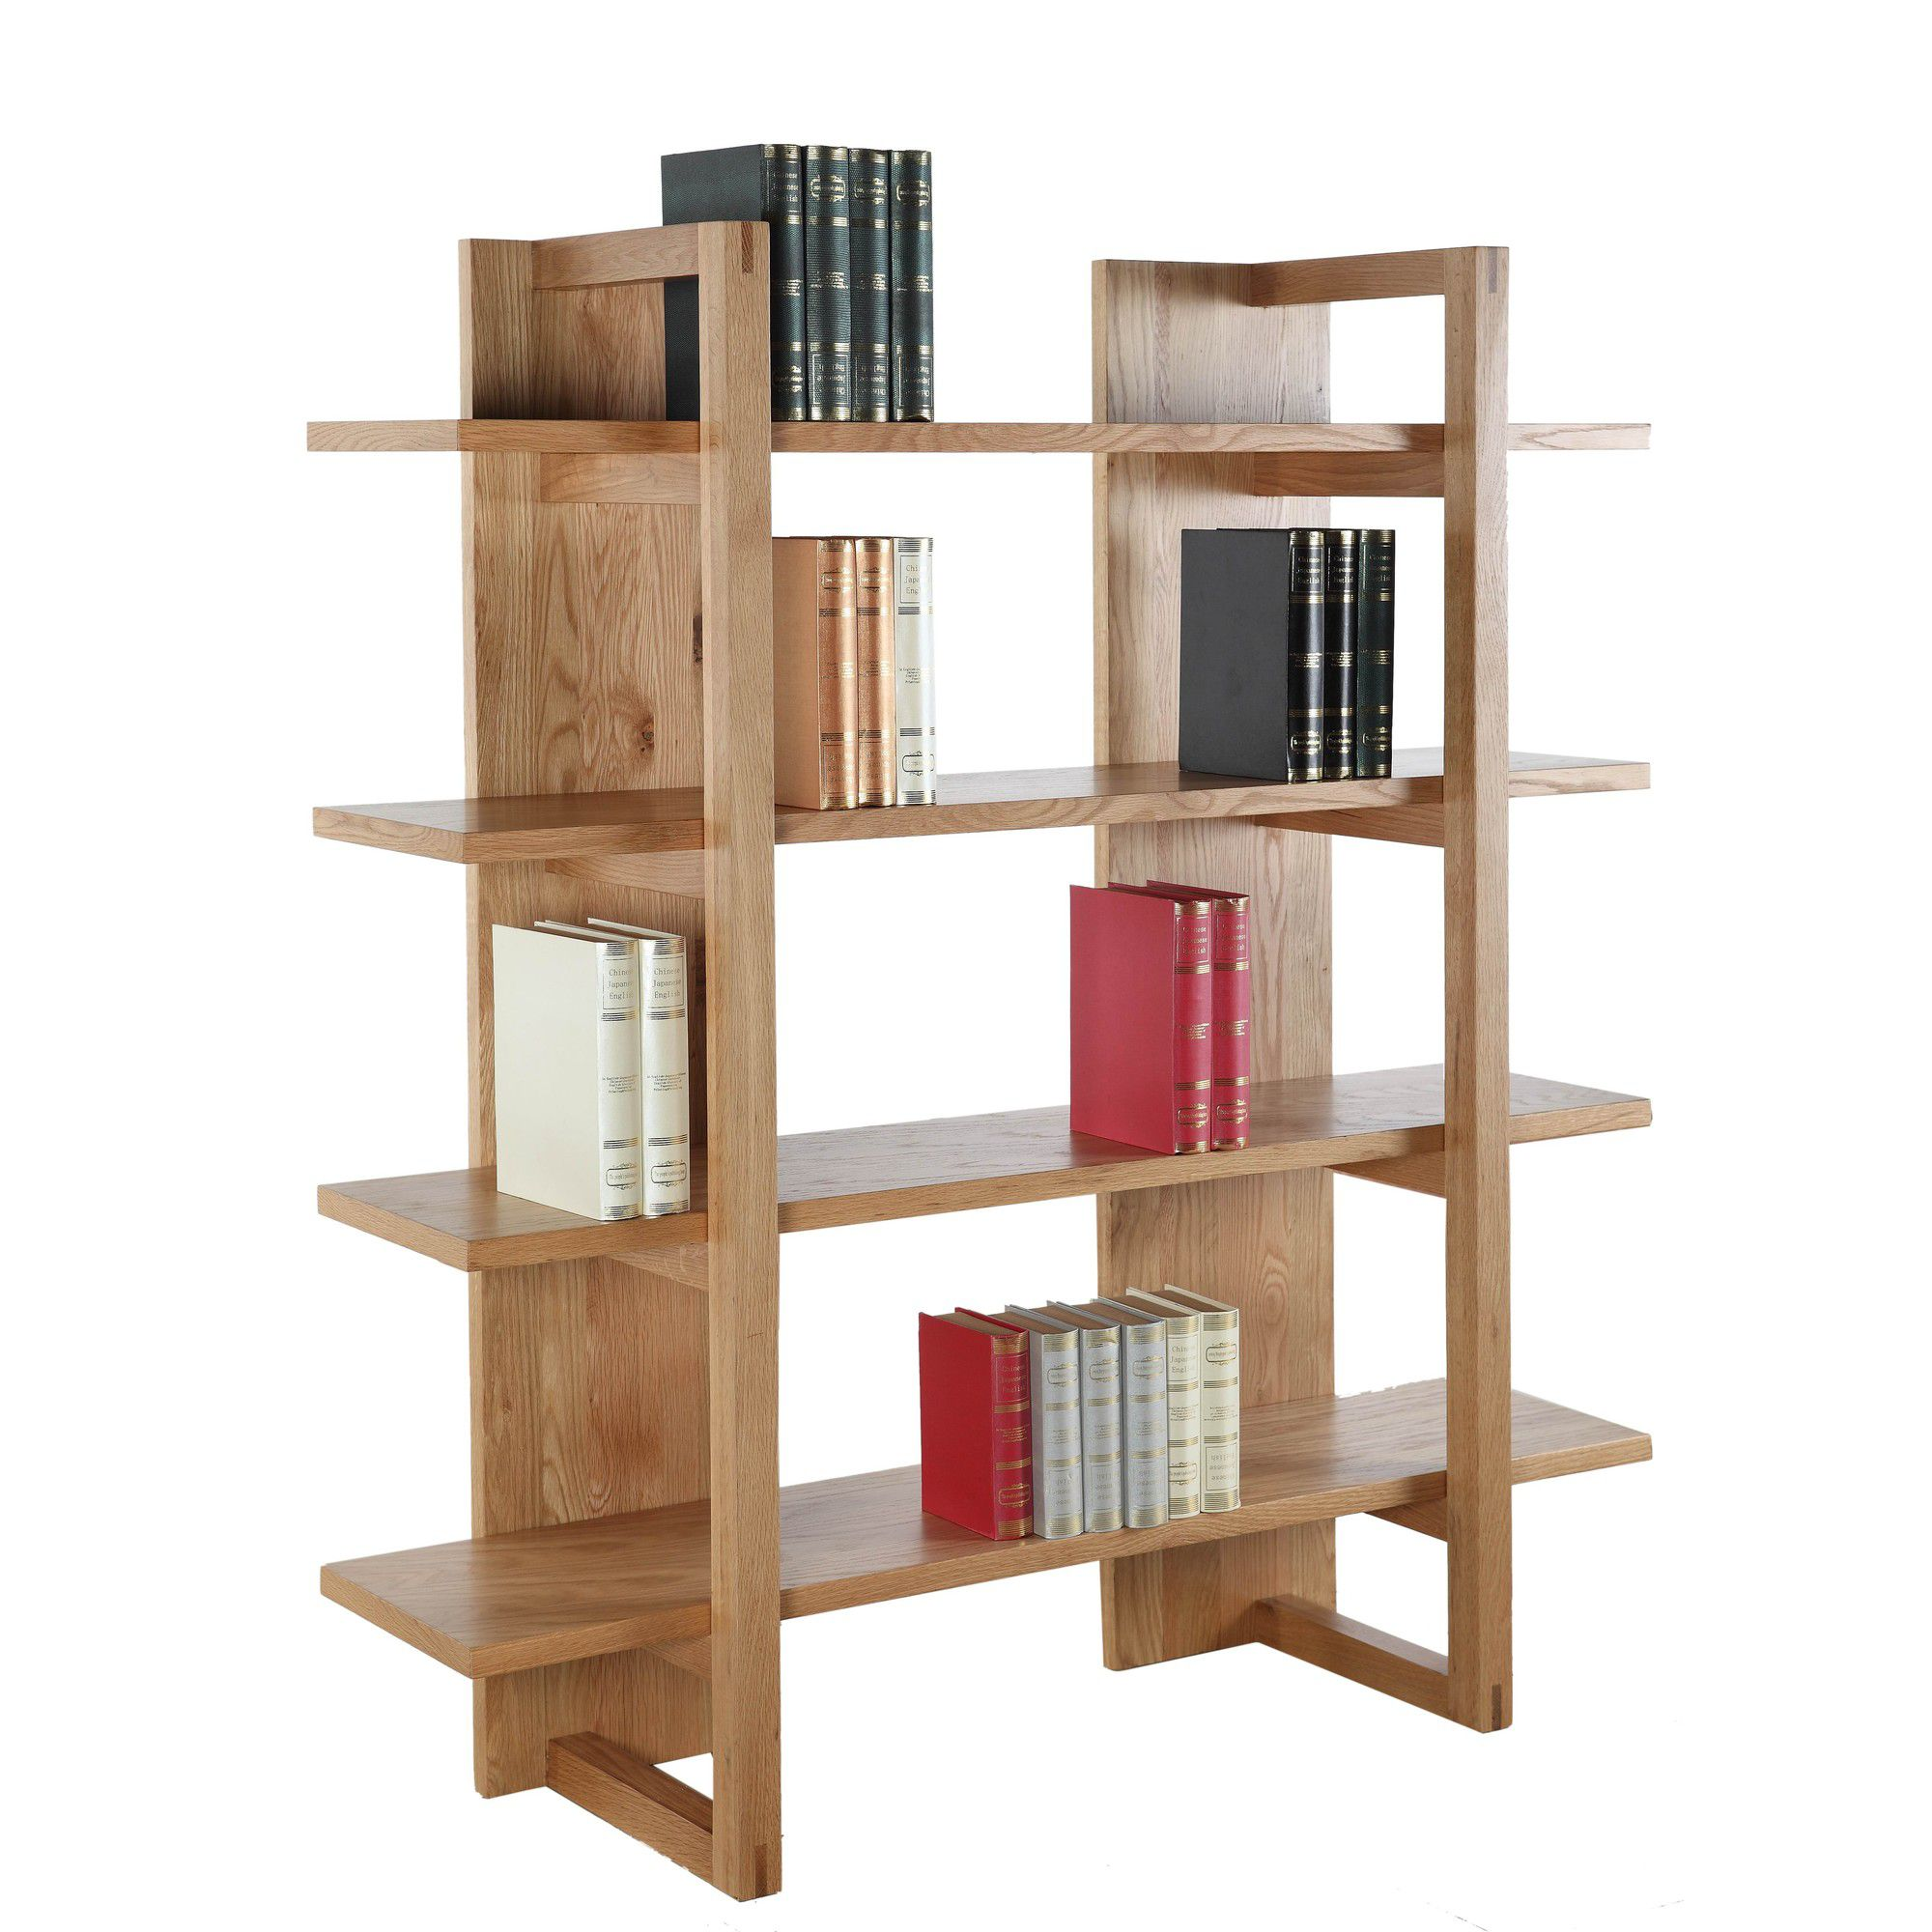 Oakinsen Canberra Bookcase at Tesco Direct